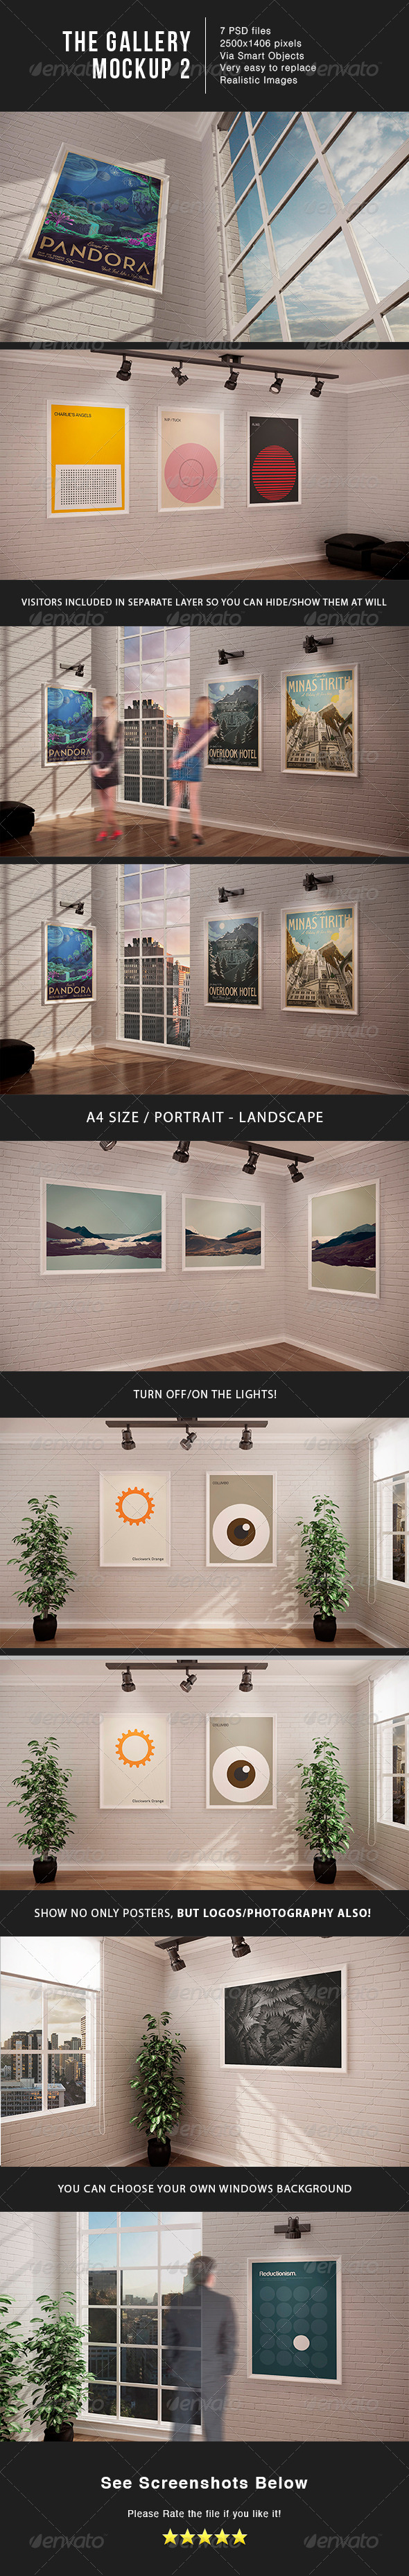 GraphicRiver The Gallery MockUp 2 6627867